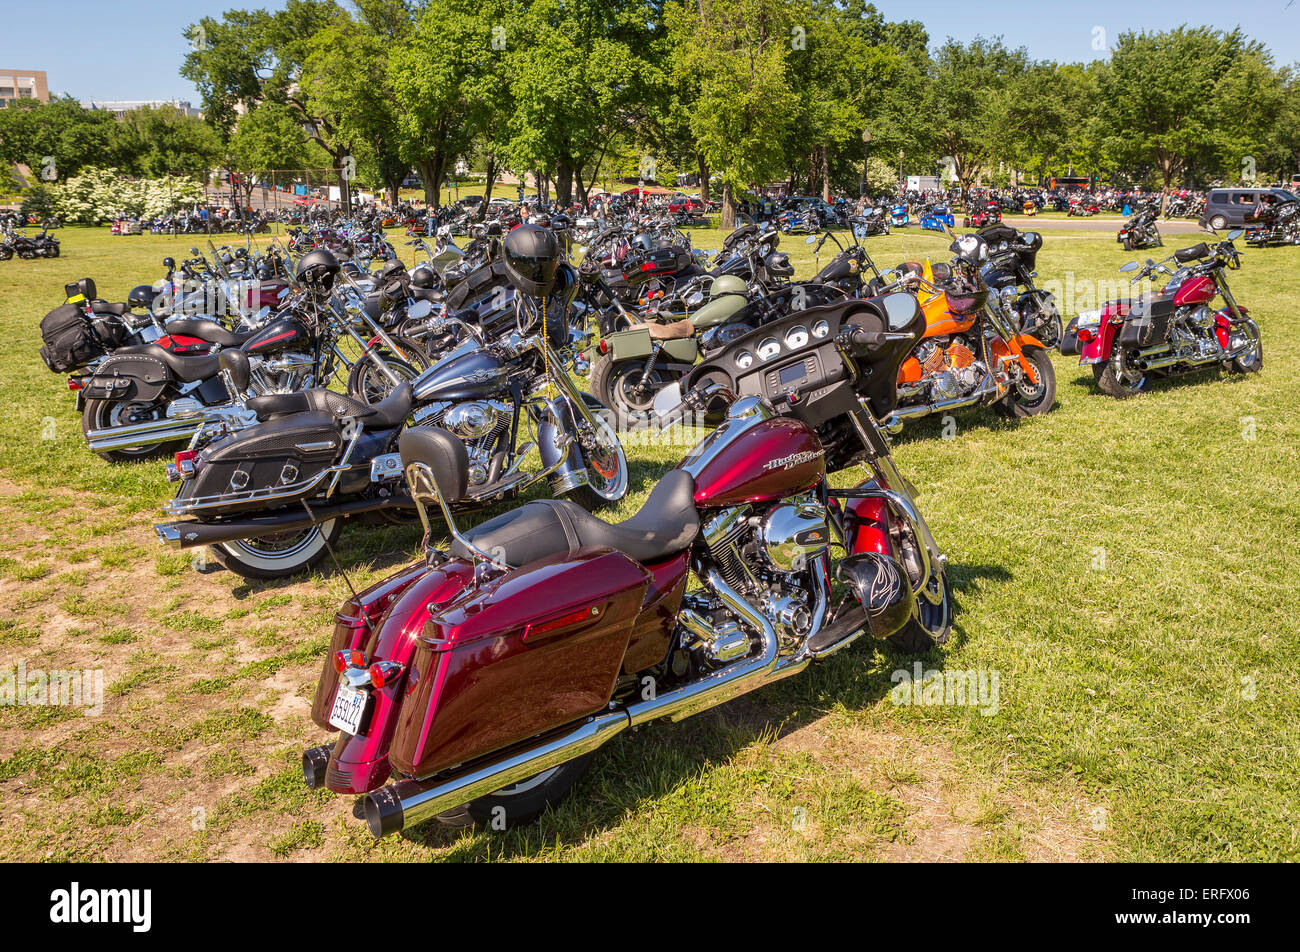 WASHINGTON, DC, USA - Motorcycles parked on National Mall during Rolling Thunder Rally on Memorial Day weekend. - Stock Image